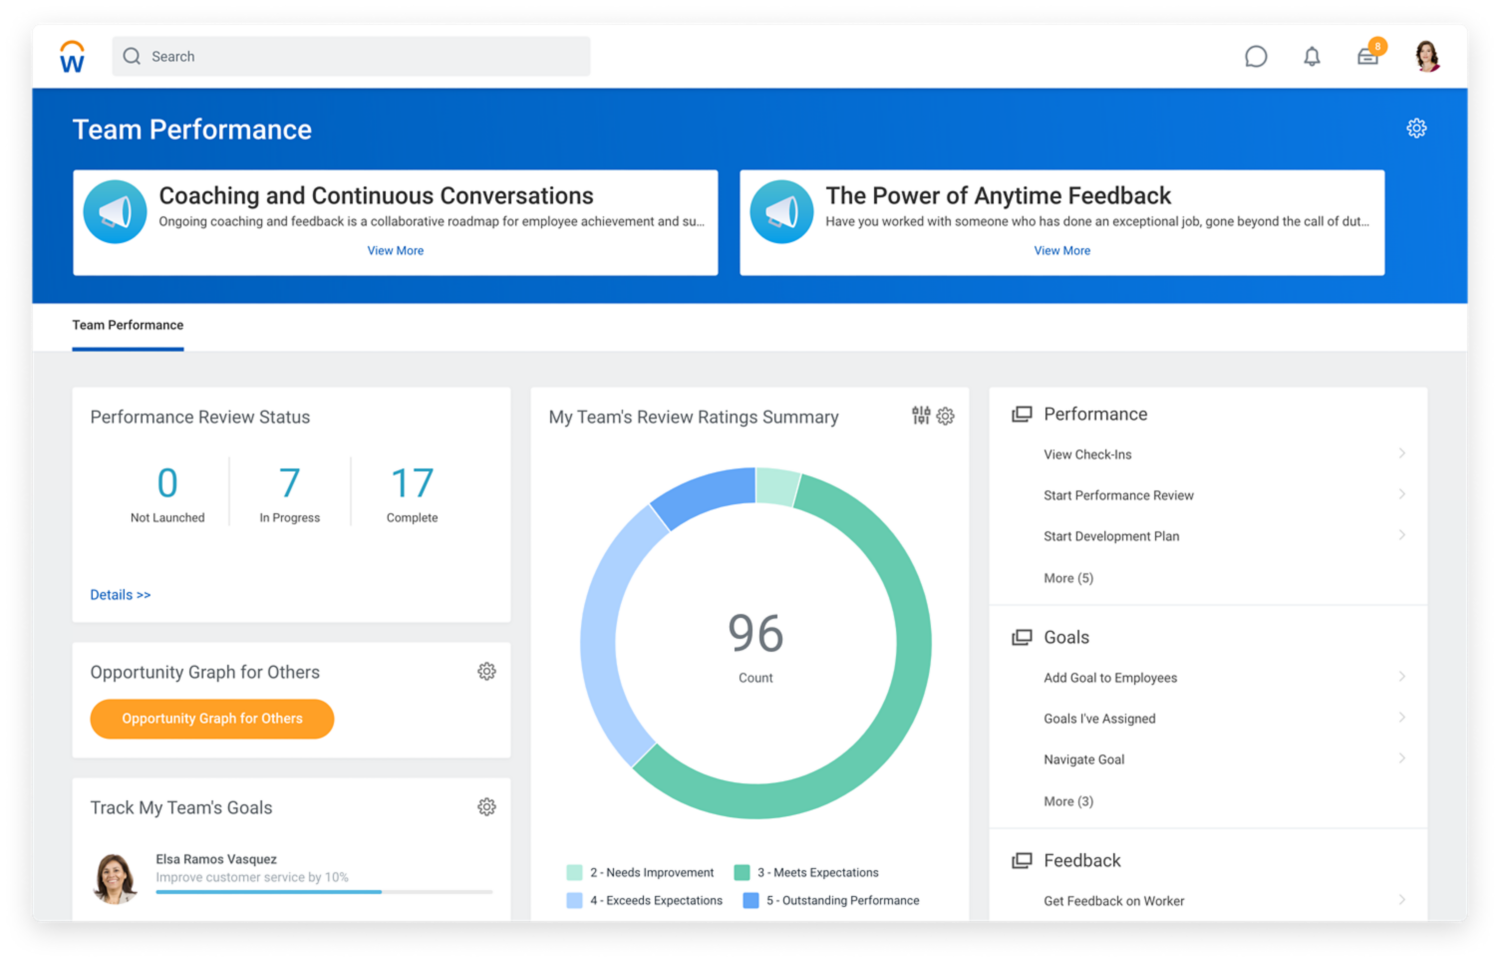 Team performance dashboard showing performance review status and a summary of team's review ratings.